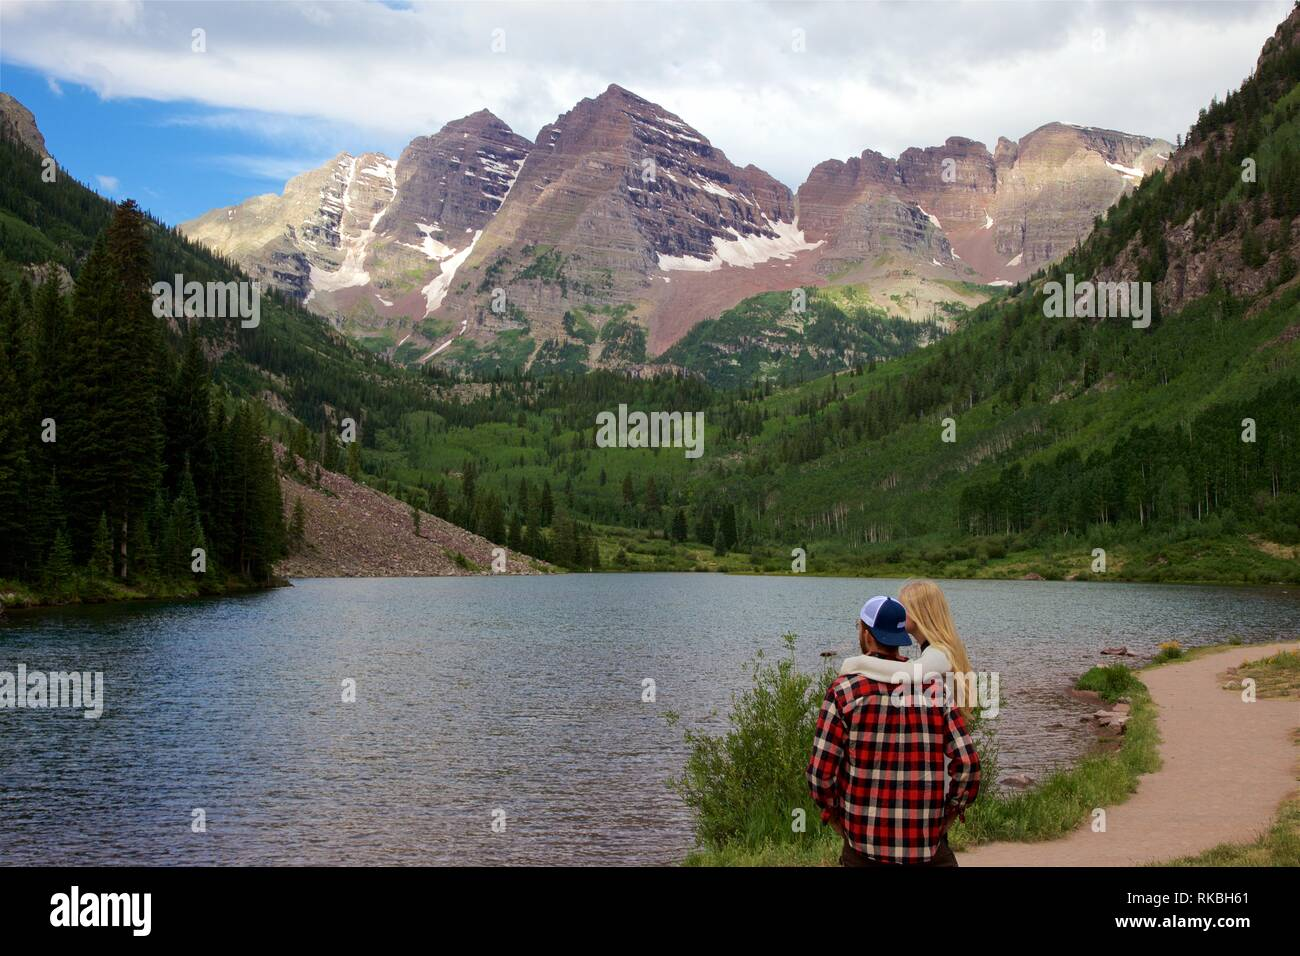 A Couple Inspired by Beauty of Nature at Maroon Bells Near Aspen, CO - Stock Image